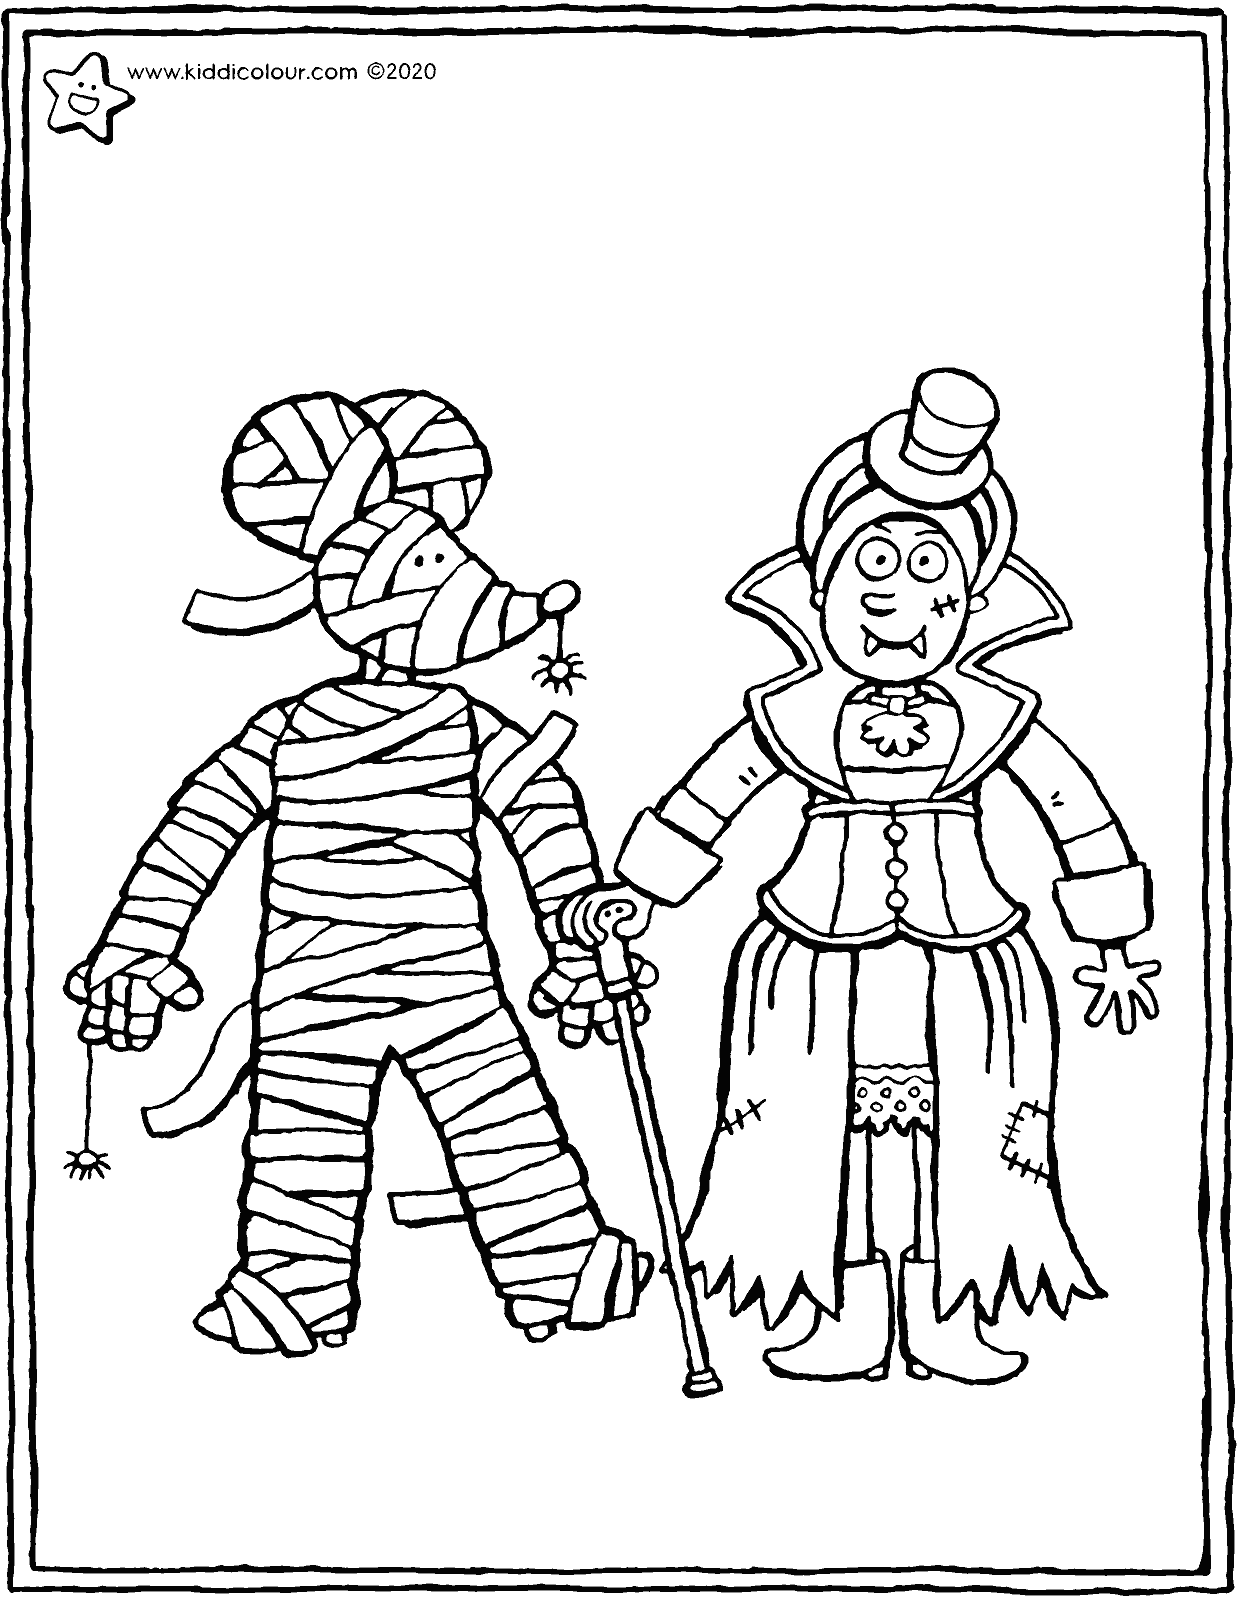 Halloween mummy and vampire colouring page drawing picture 01V